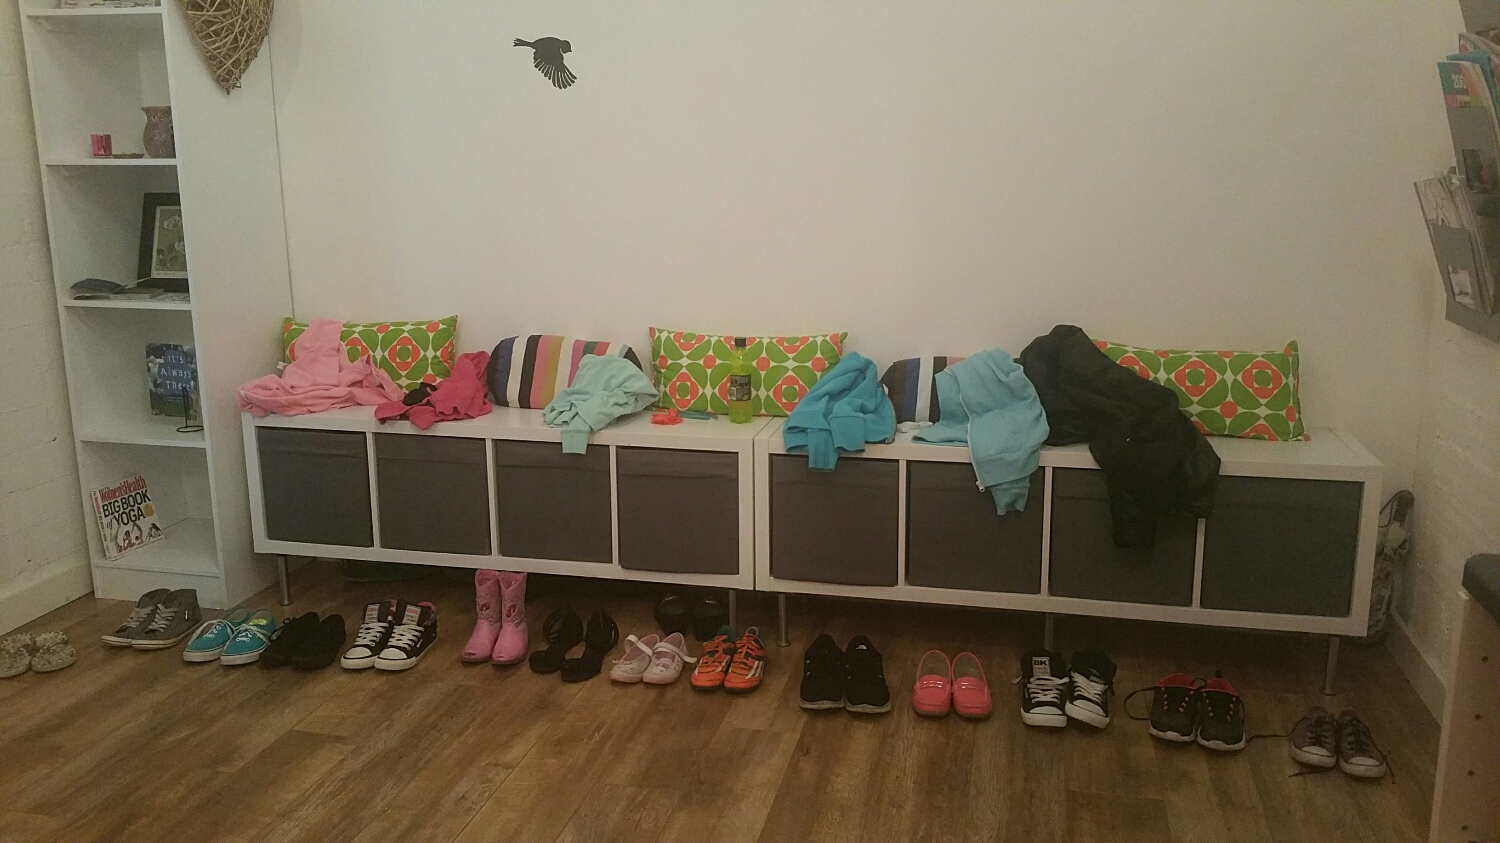 All the little shoes lined up from the kids at Aerial Yoga this evening...super cute!